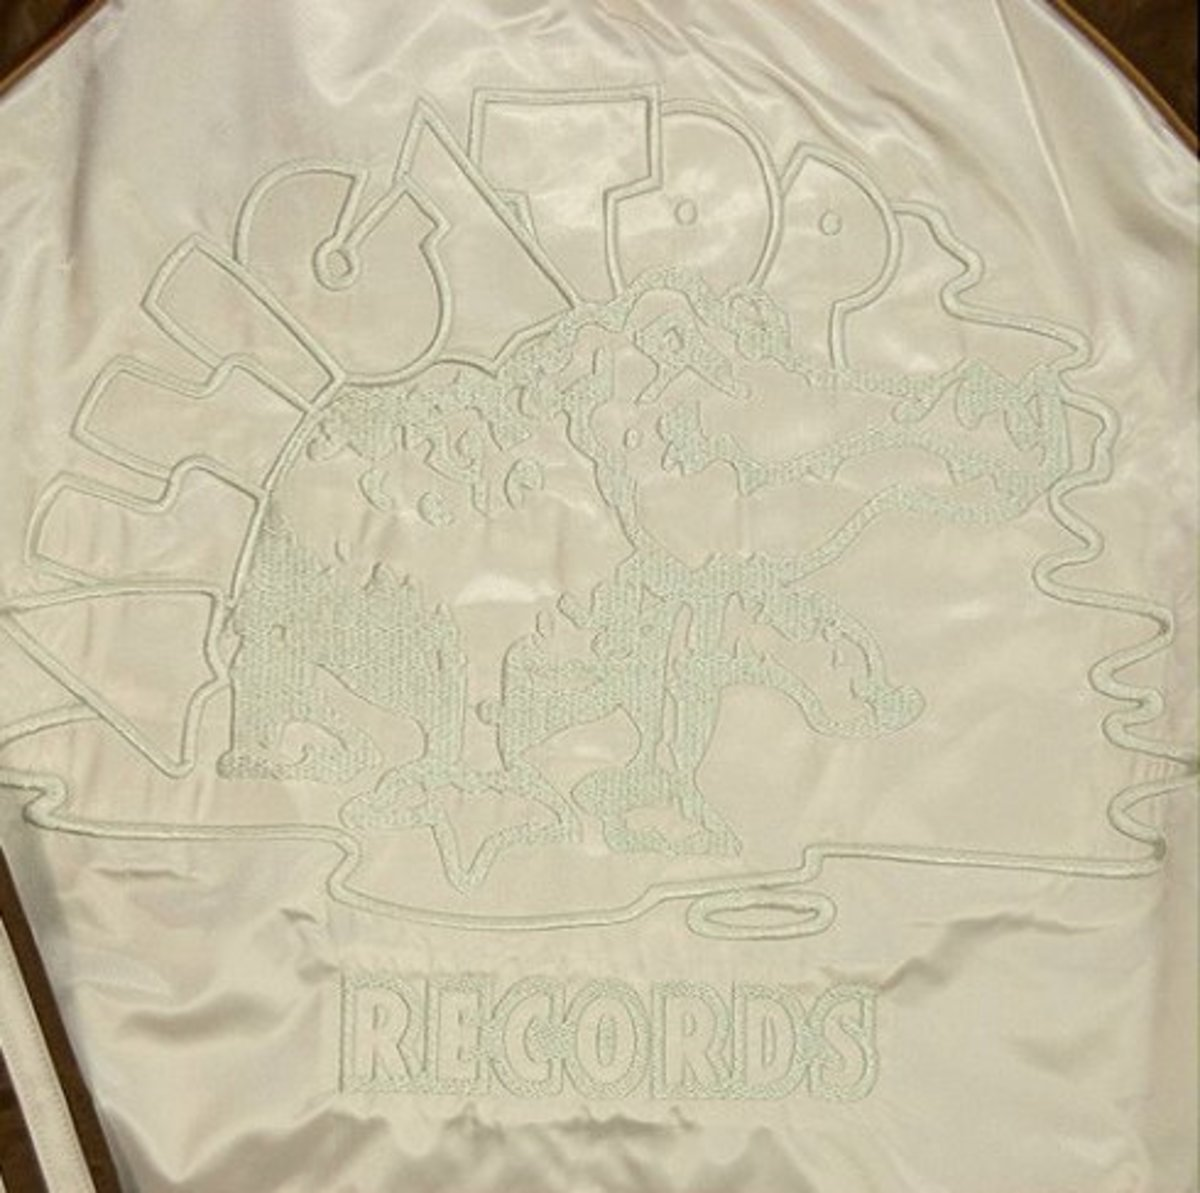 adidas Originals - Sounds of the City - Alligator Records Pack - Track Jacket